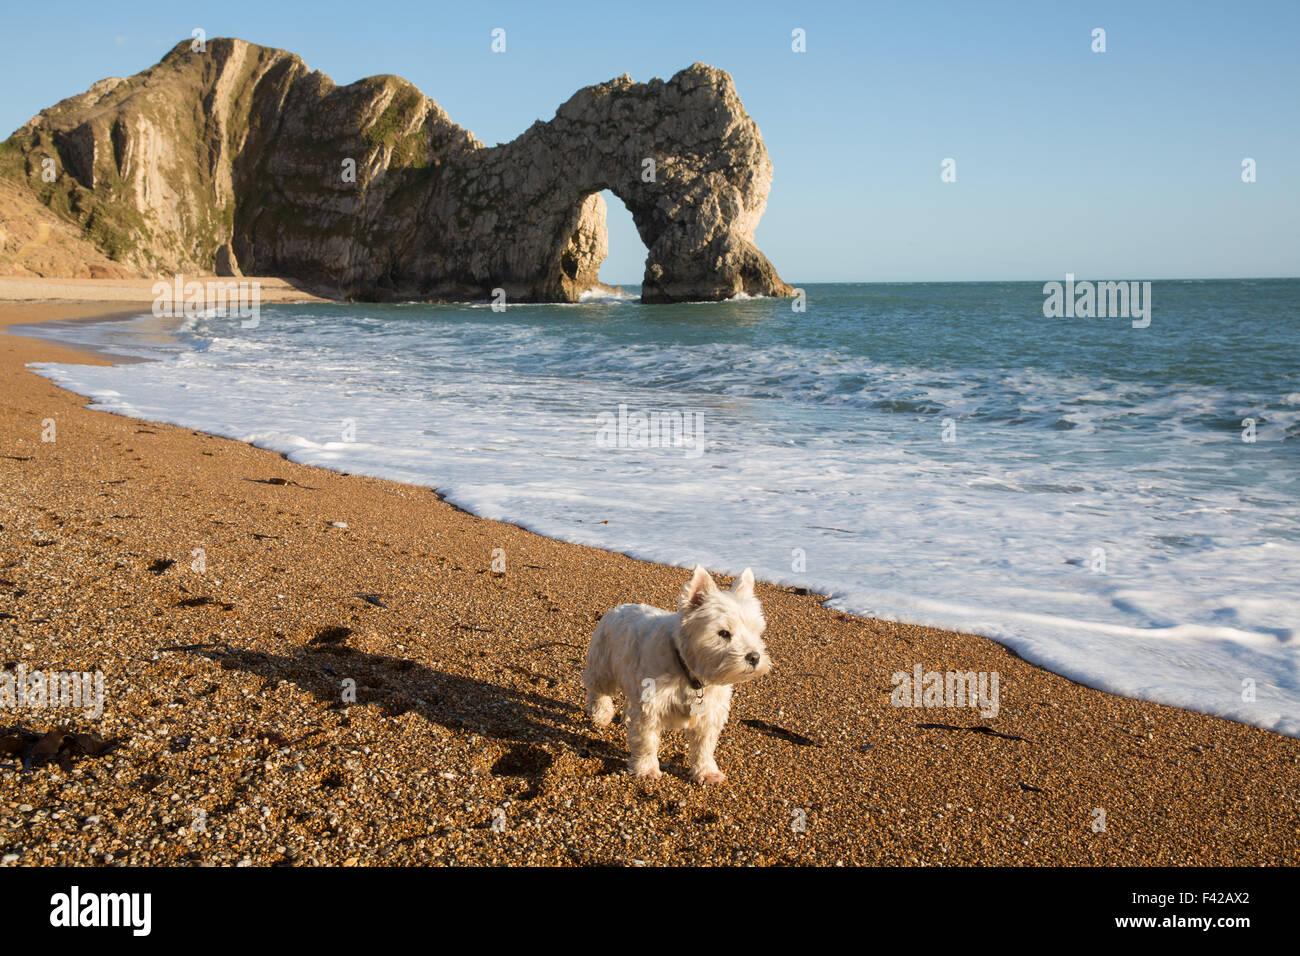 a dog on the beach at Durdle Door, Jurassic Coast, Dorset, England, UK - Stock Image